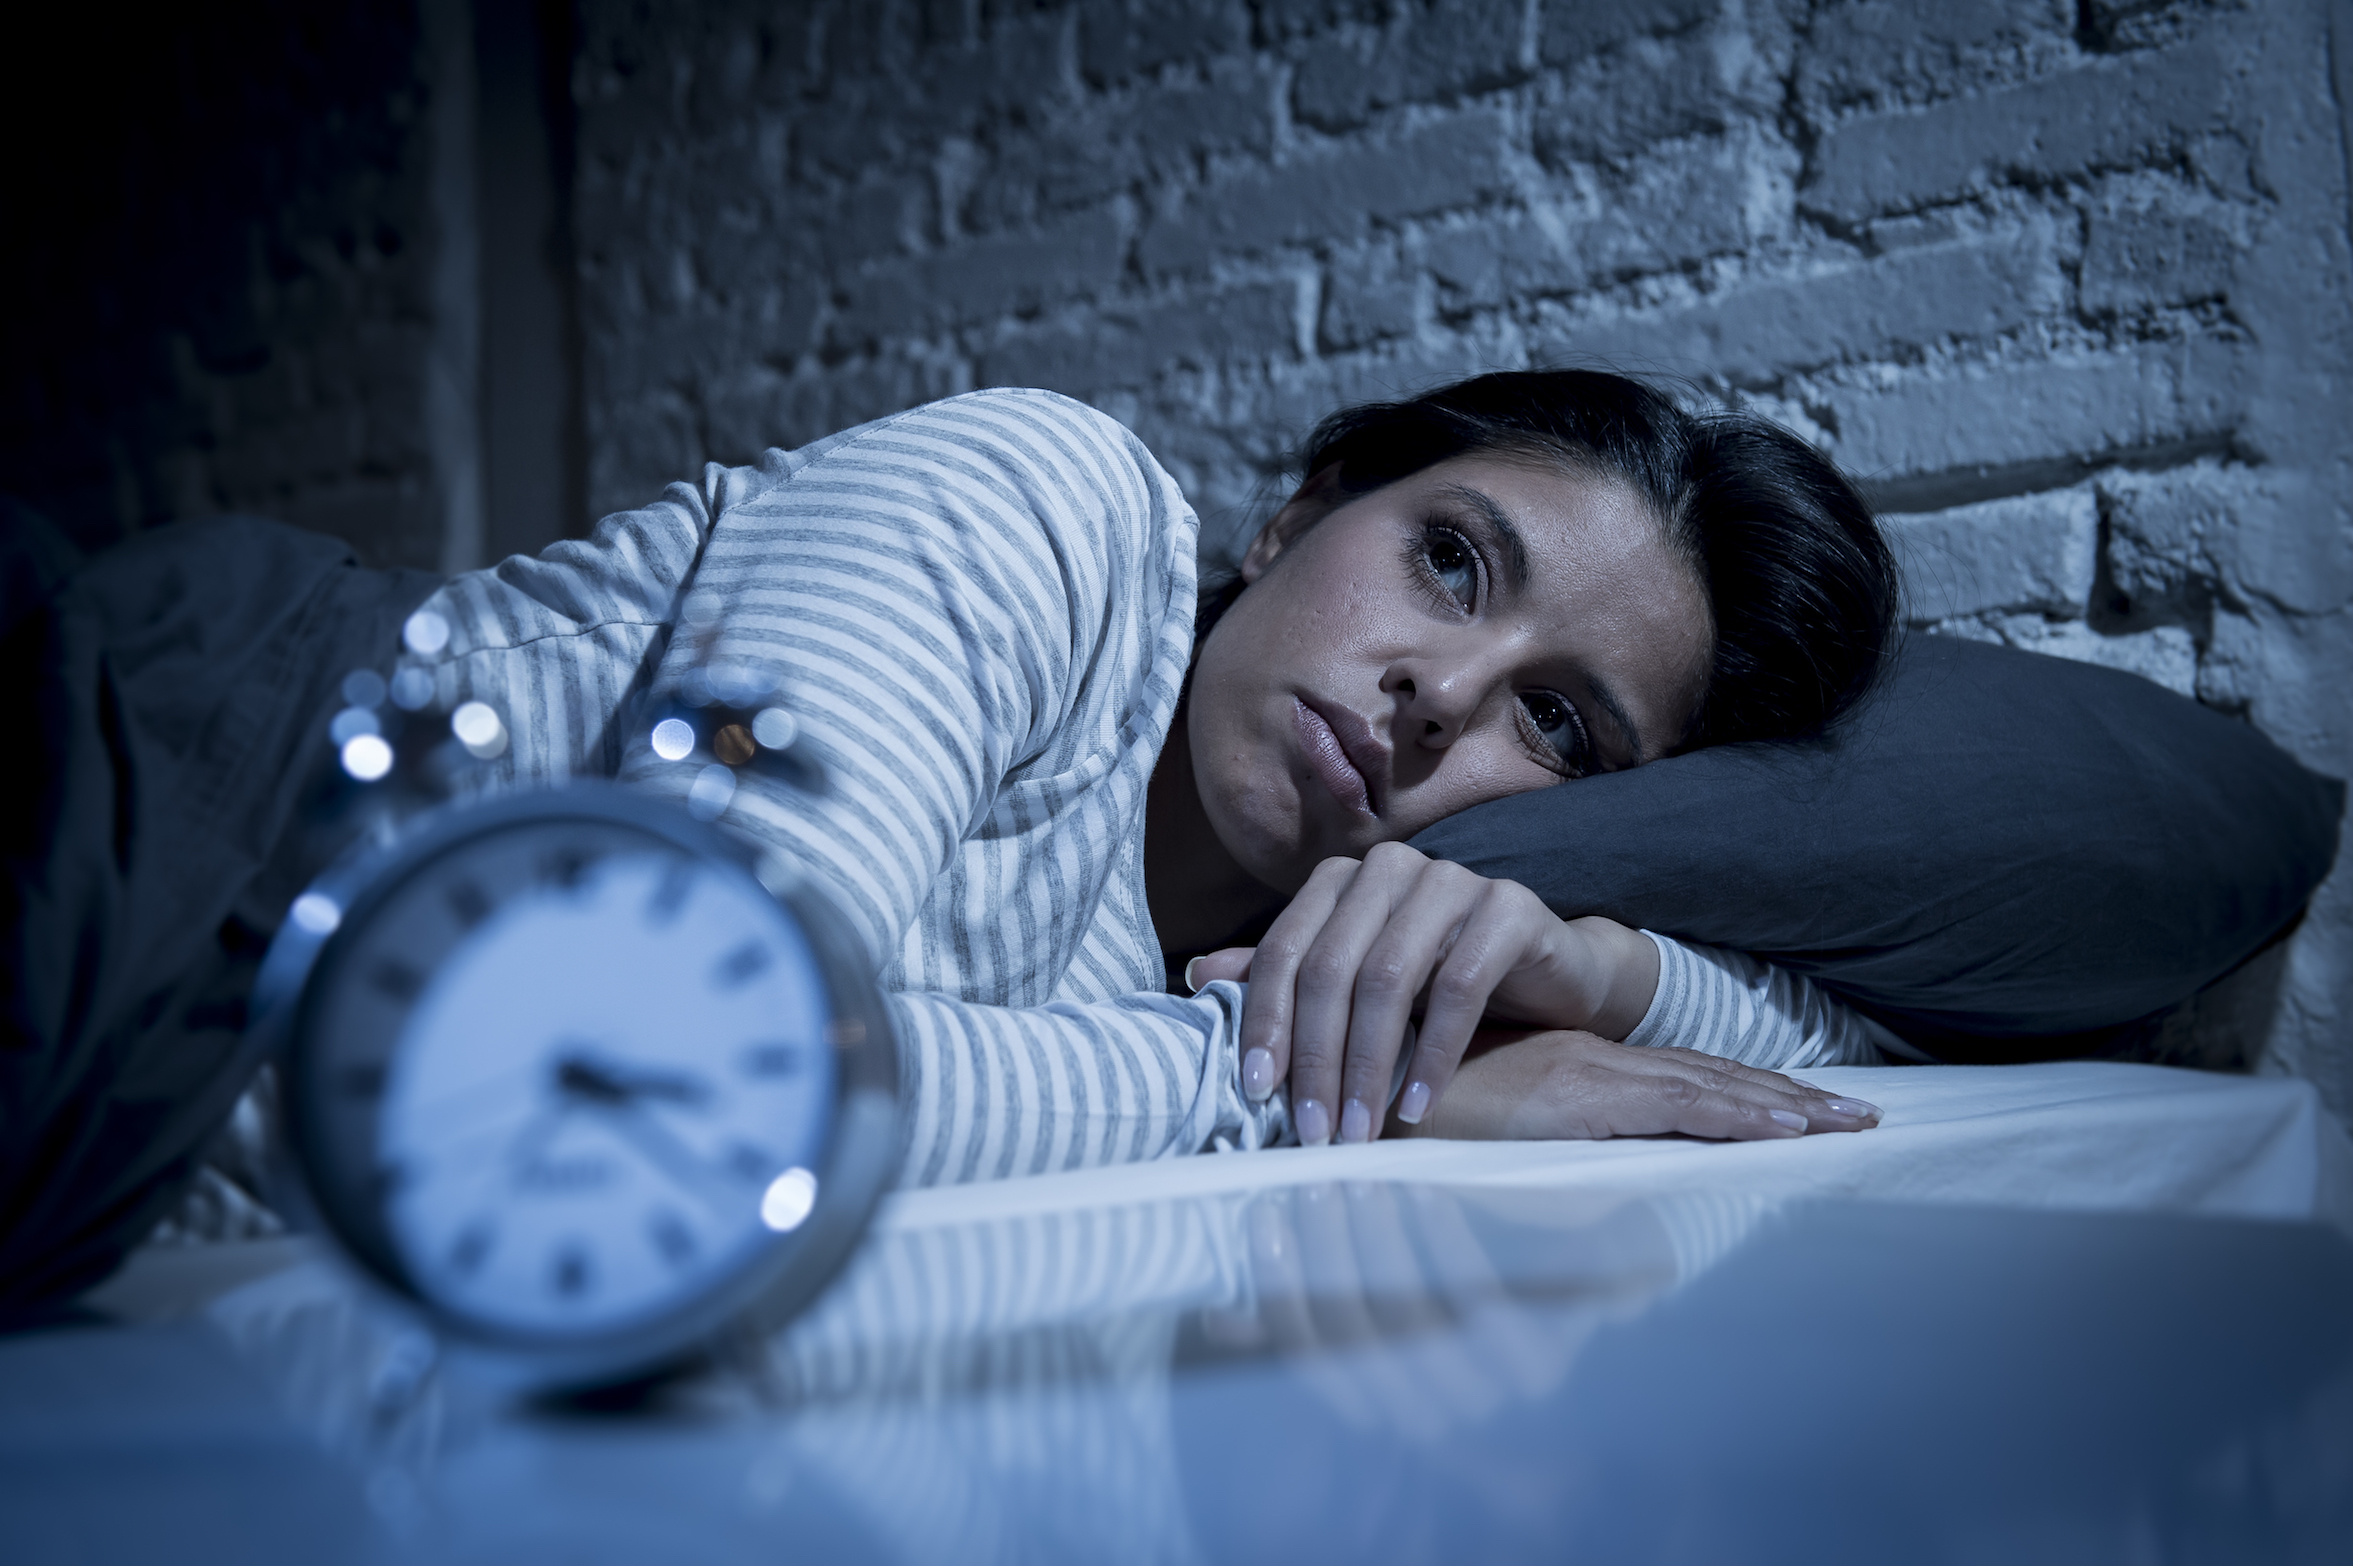 A new study has found that one in four Americans, about 25 percent, suffer from acute insomnia every year.